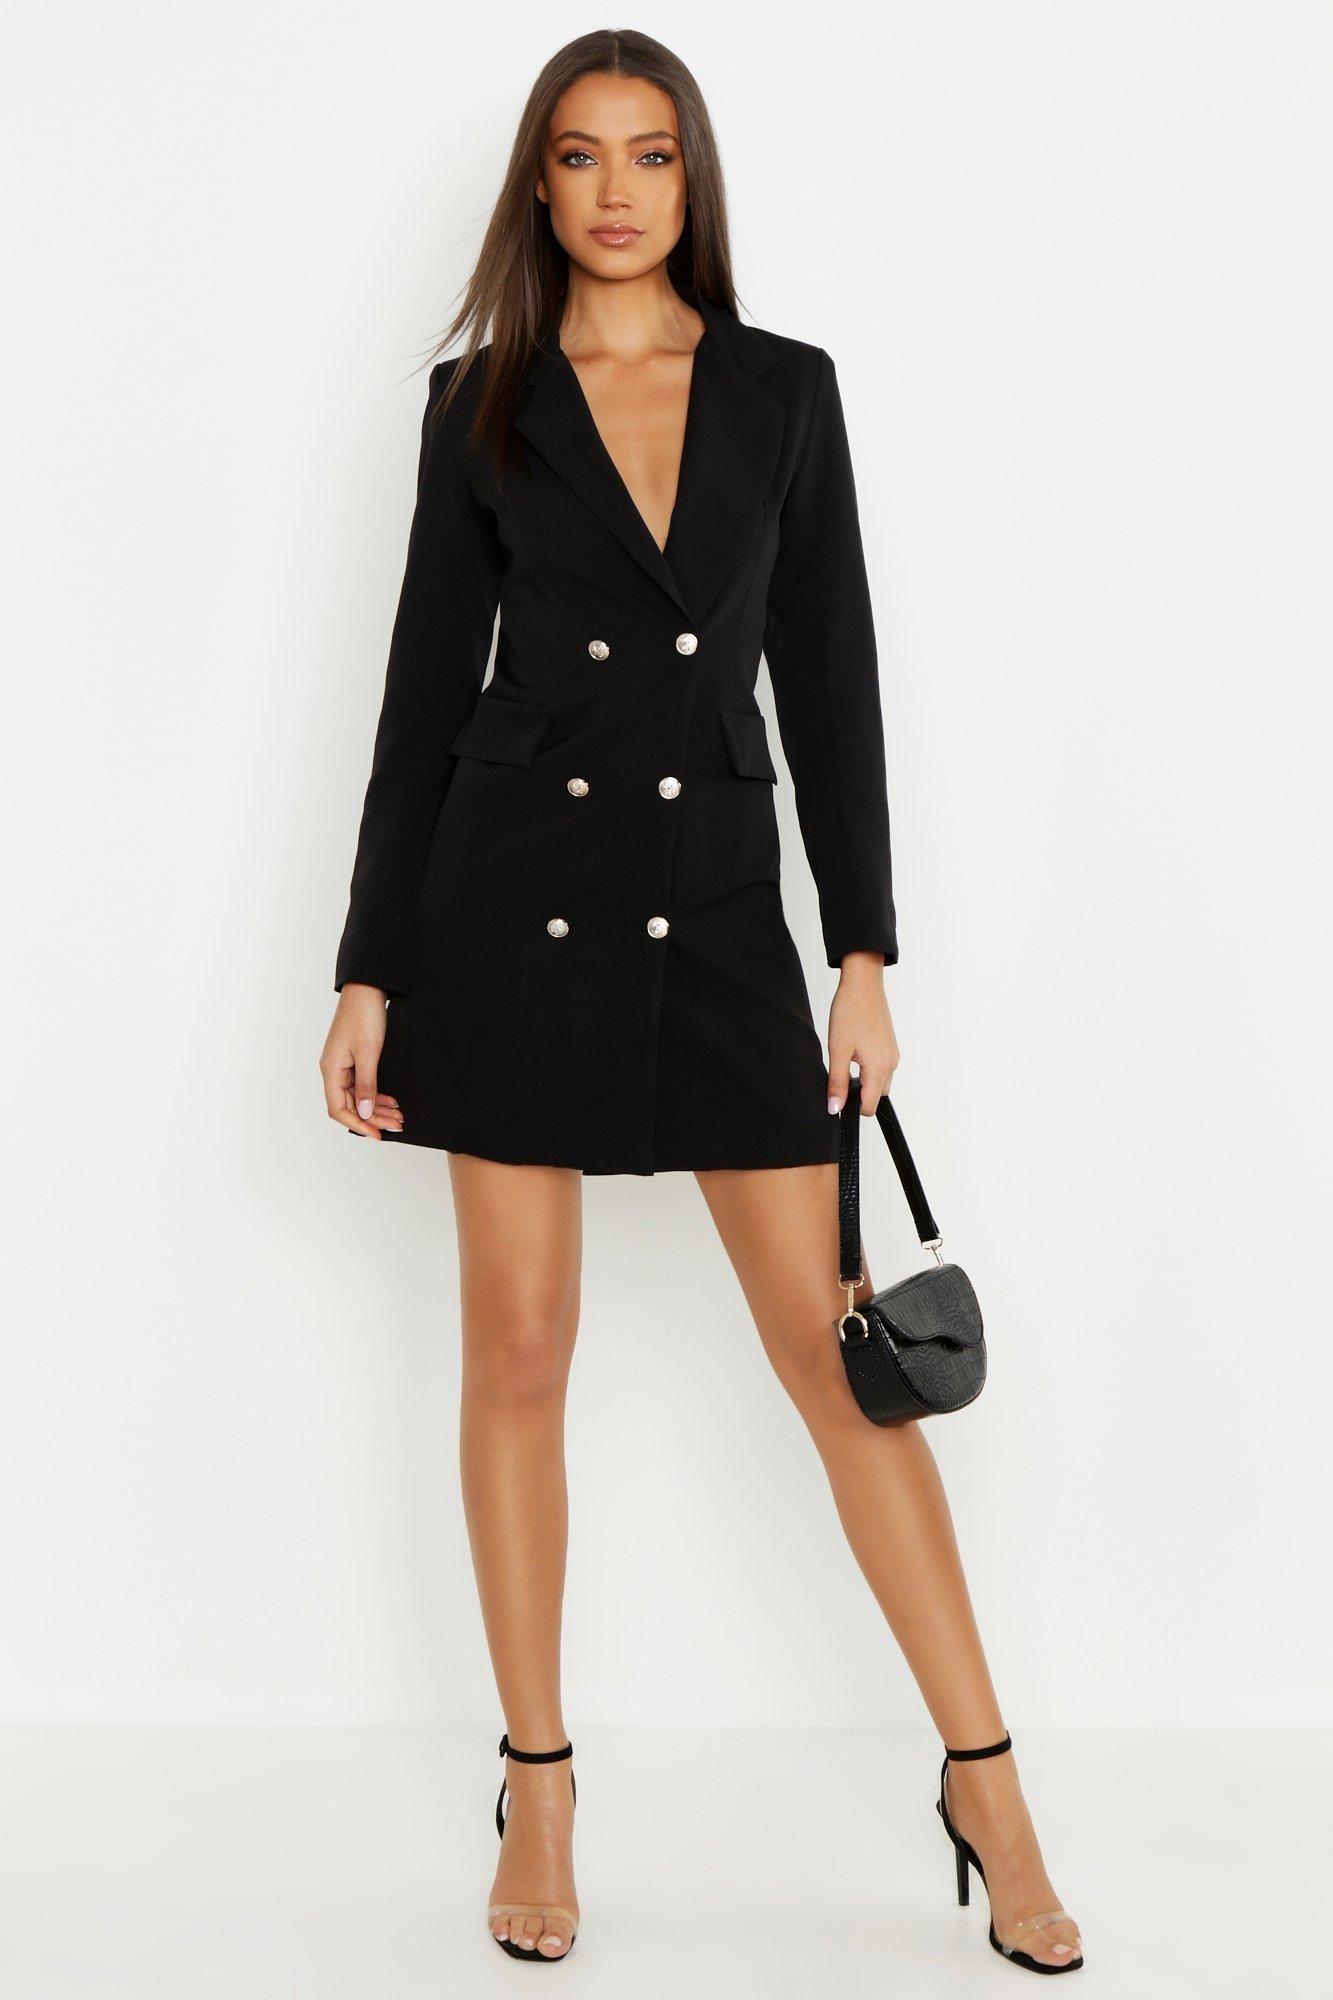 Tall Blazer Dress Blazer Dress Blazer Dress Outfits Clothing For Tall Women [ 2000 x 1333 Pixel ]